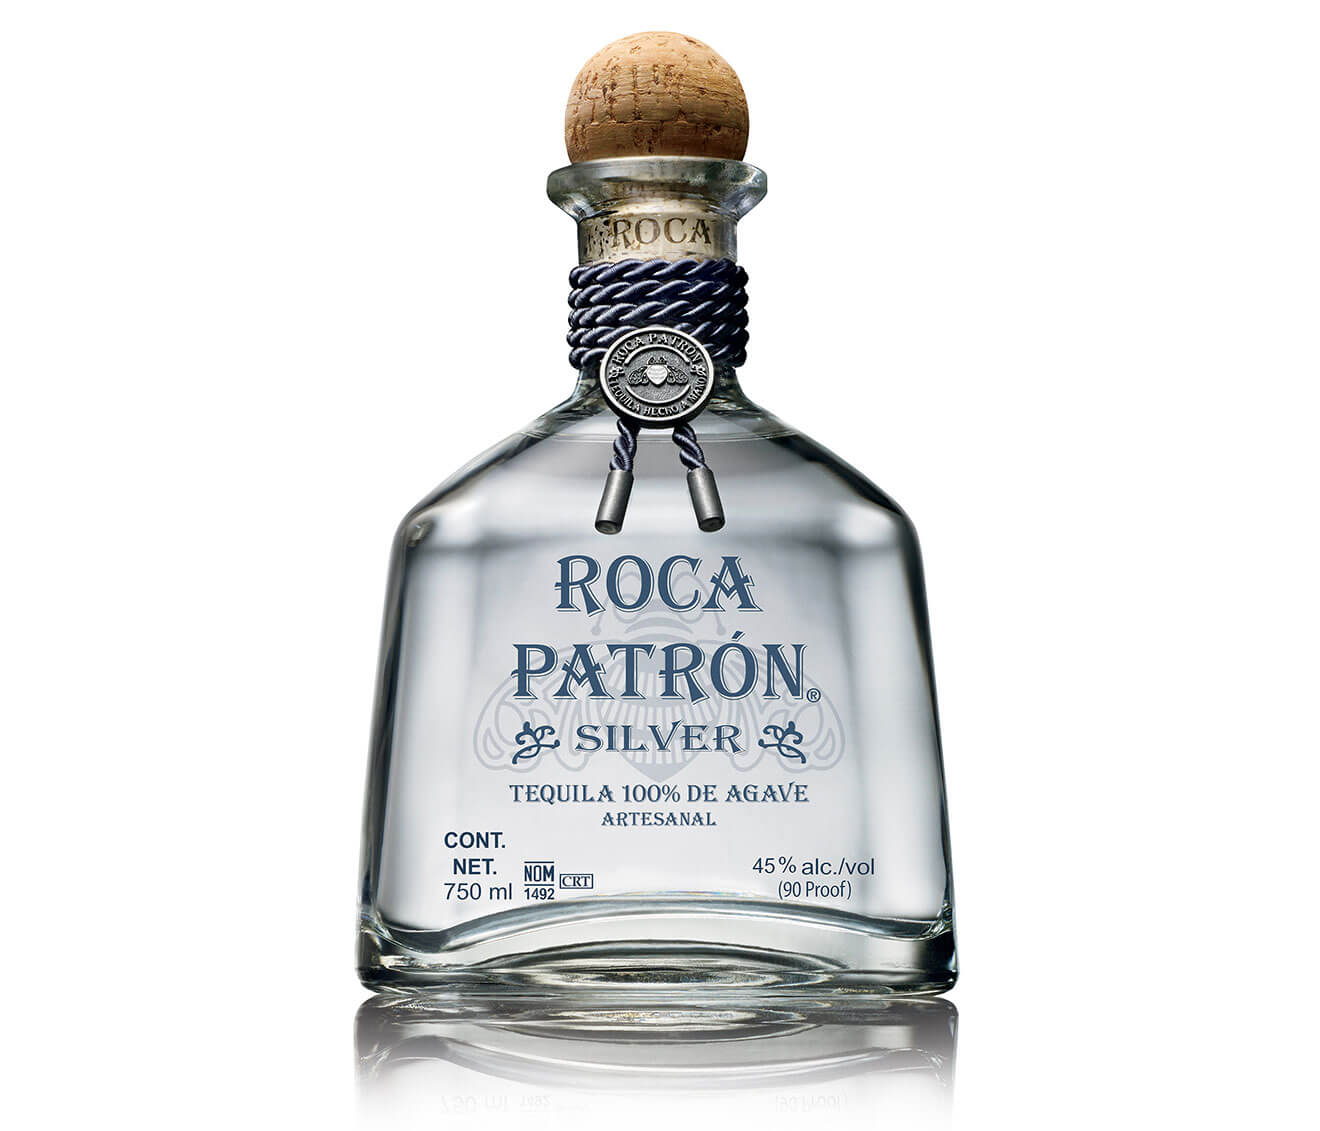 Roca Patrón Silver, bottle on white